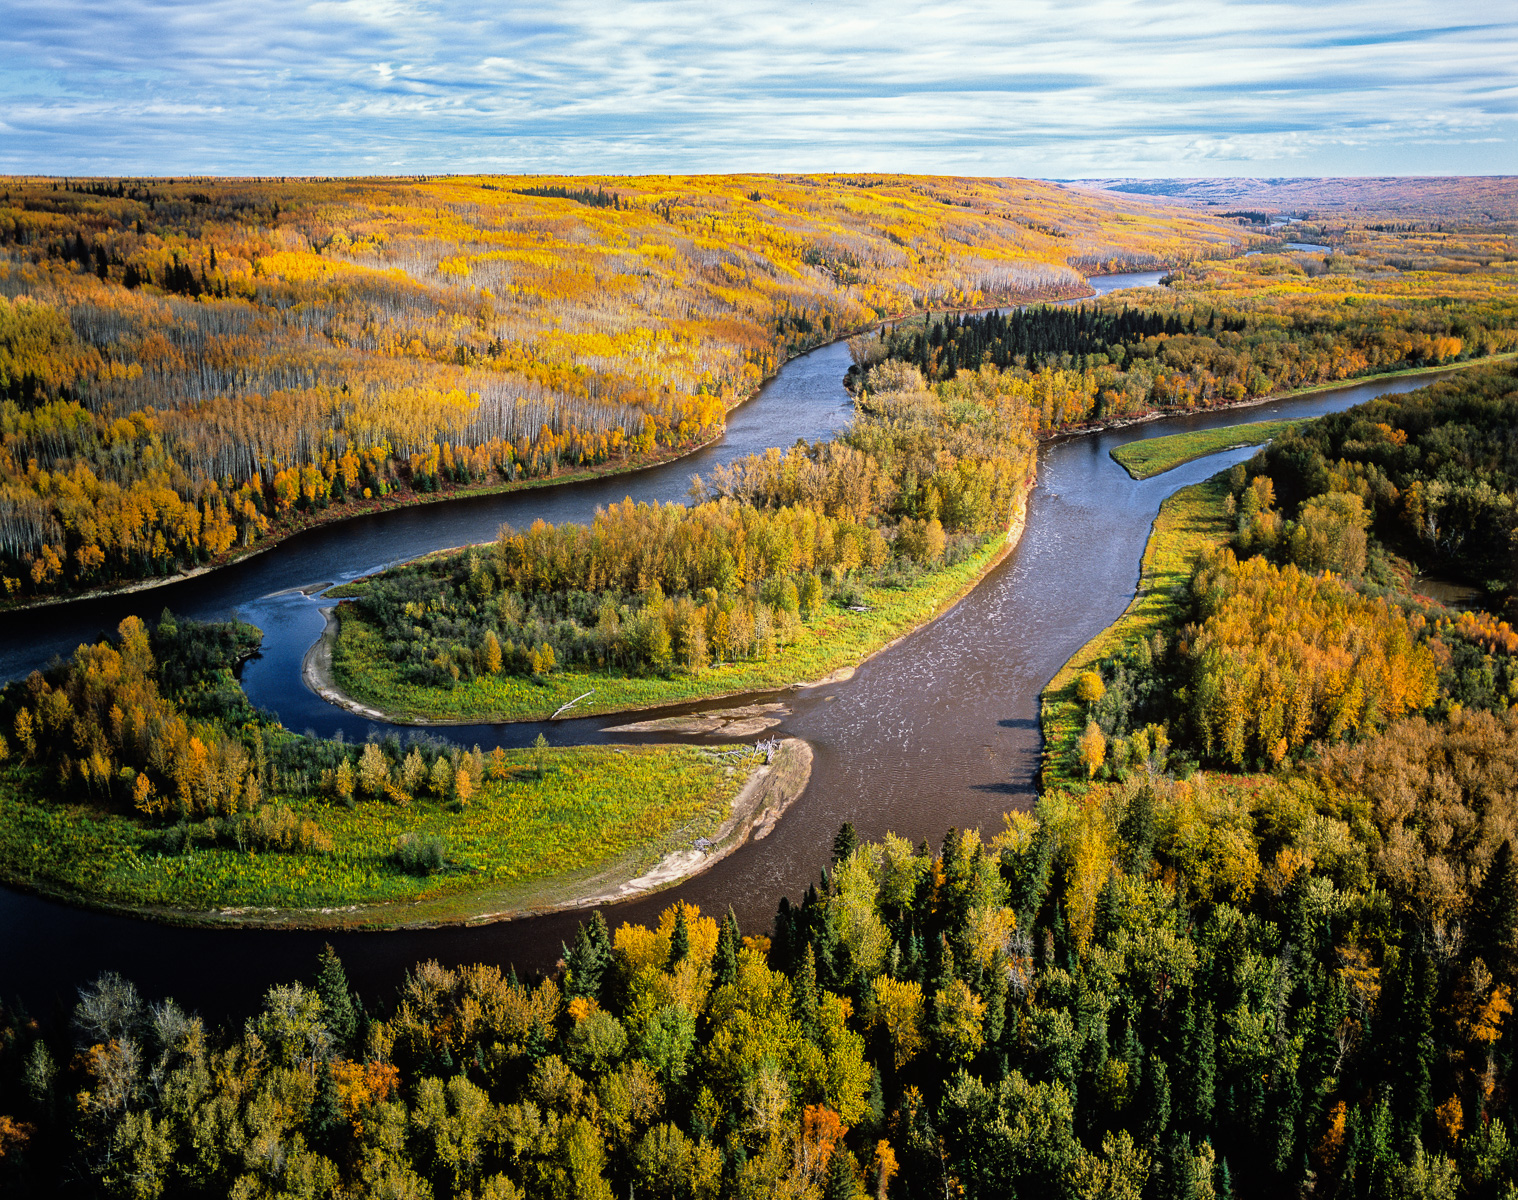 Located just east of Fort McMurray, Alberta, the intact Clearwater River shown here, soon joins the Athabasca River as it winds its way north through the Tar Sands, bordered by the vast, unlined, leaching tailings ponds which border it on either side. Forests like this are tranformed into tar mines to access the {quote}bitumen{quote} buried under them.